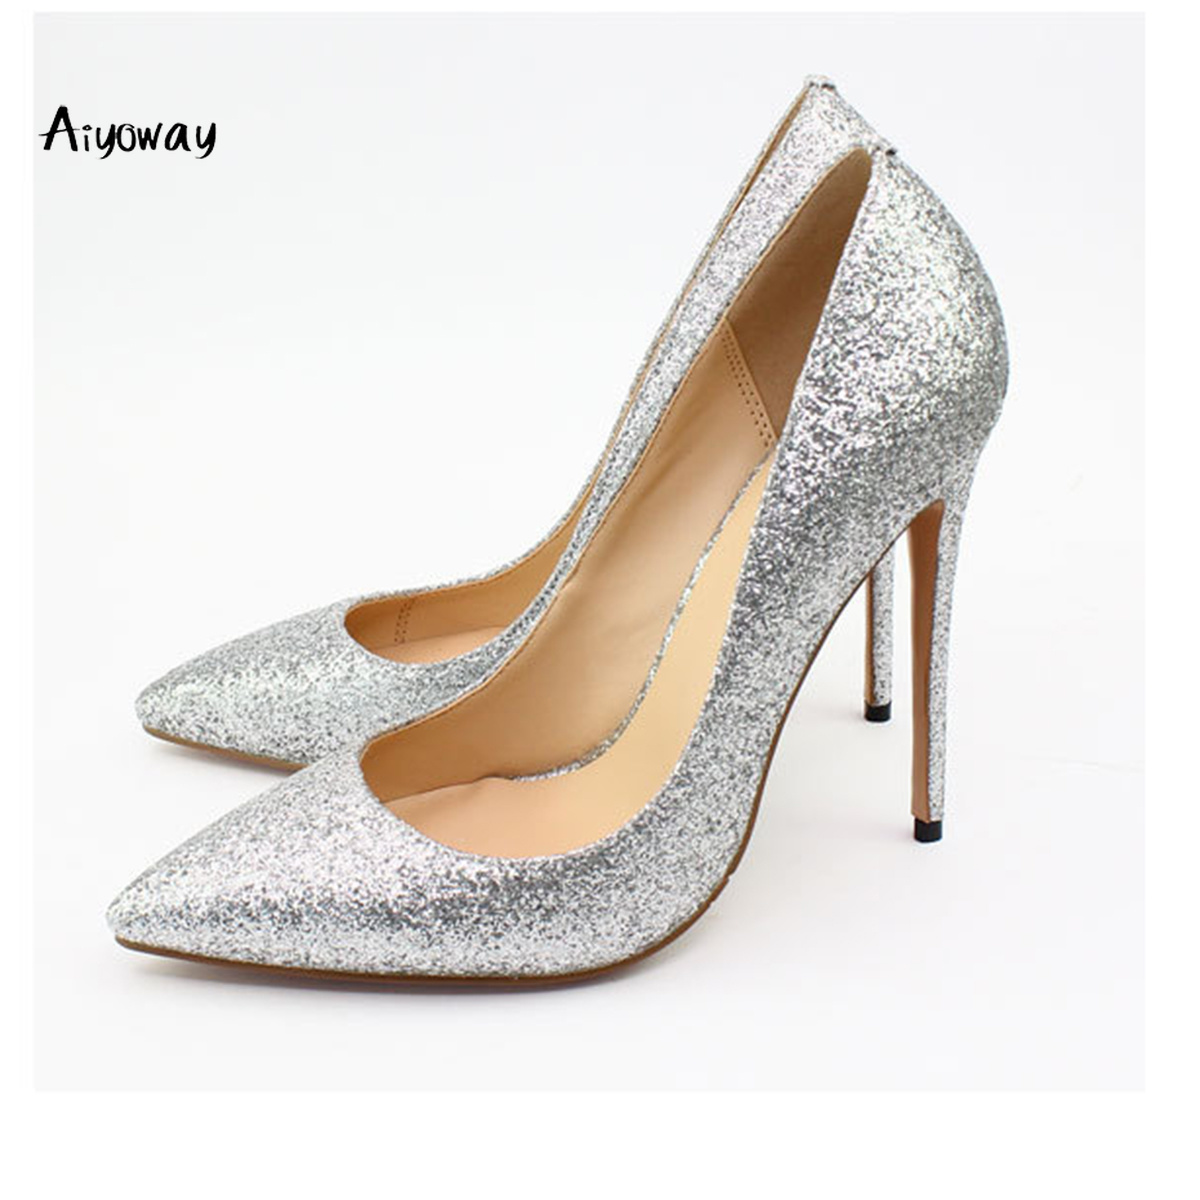 Aiyoway Women Shoes Ladies Pointed Toe High Heels Pumps Glitter Glimmer Autumn Spring Party Clubwear Shoes Silver Pink Black in Women 39 s Pumps from Shoes